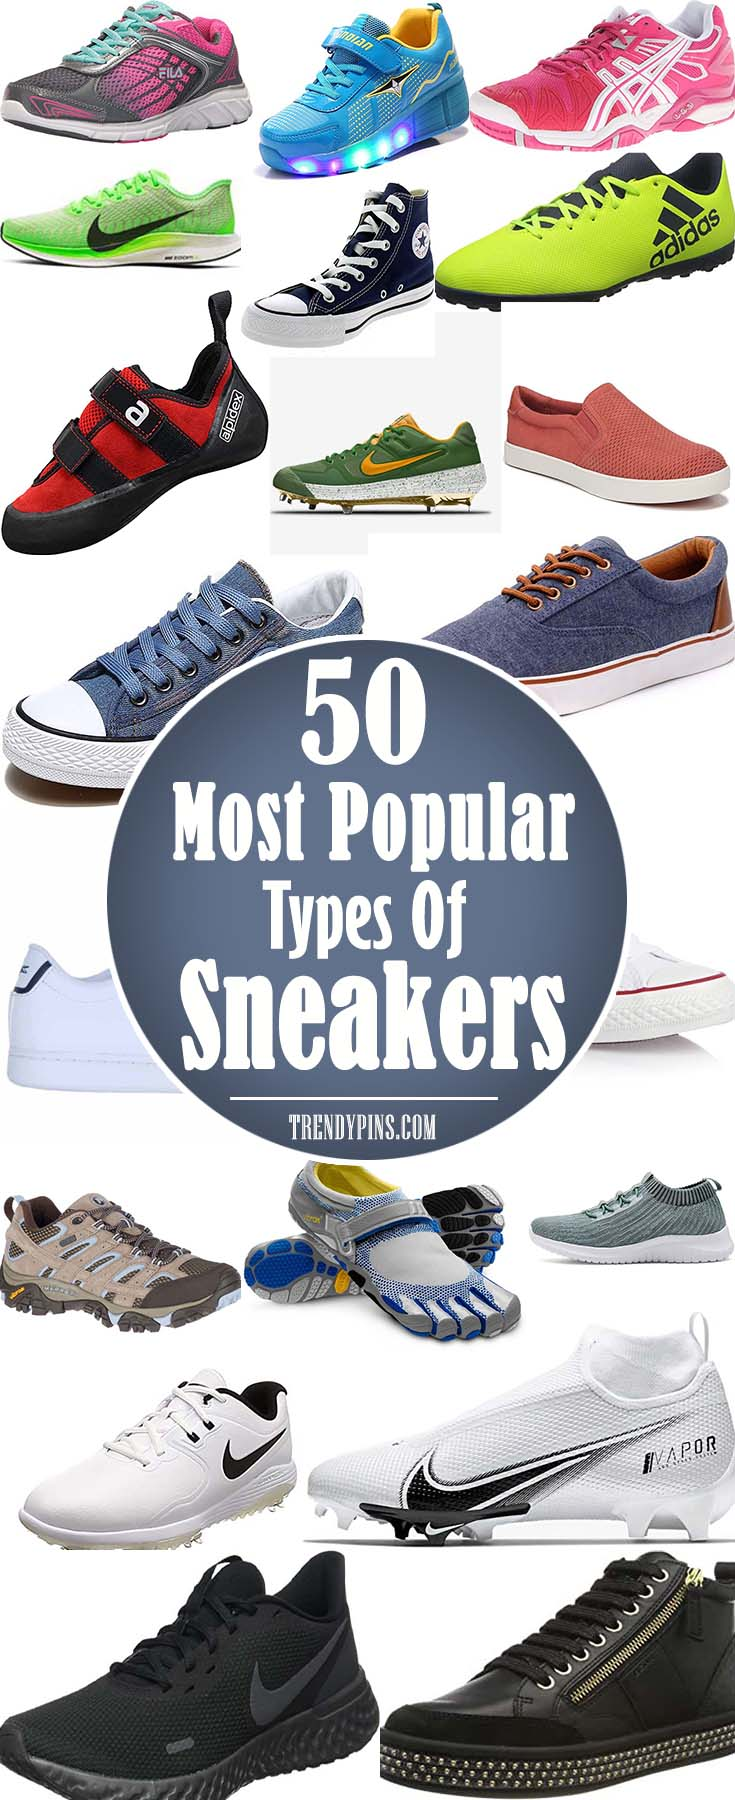 50 Most Popular Types Of Sneakers #sneakers #fashion #trendypins